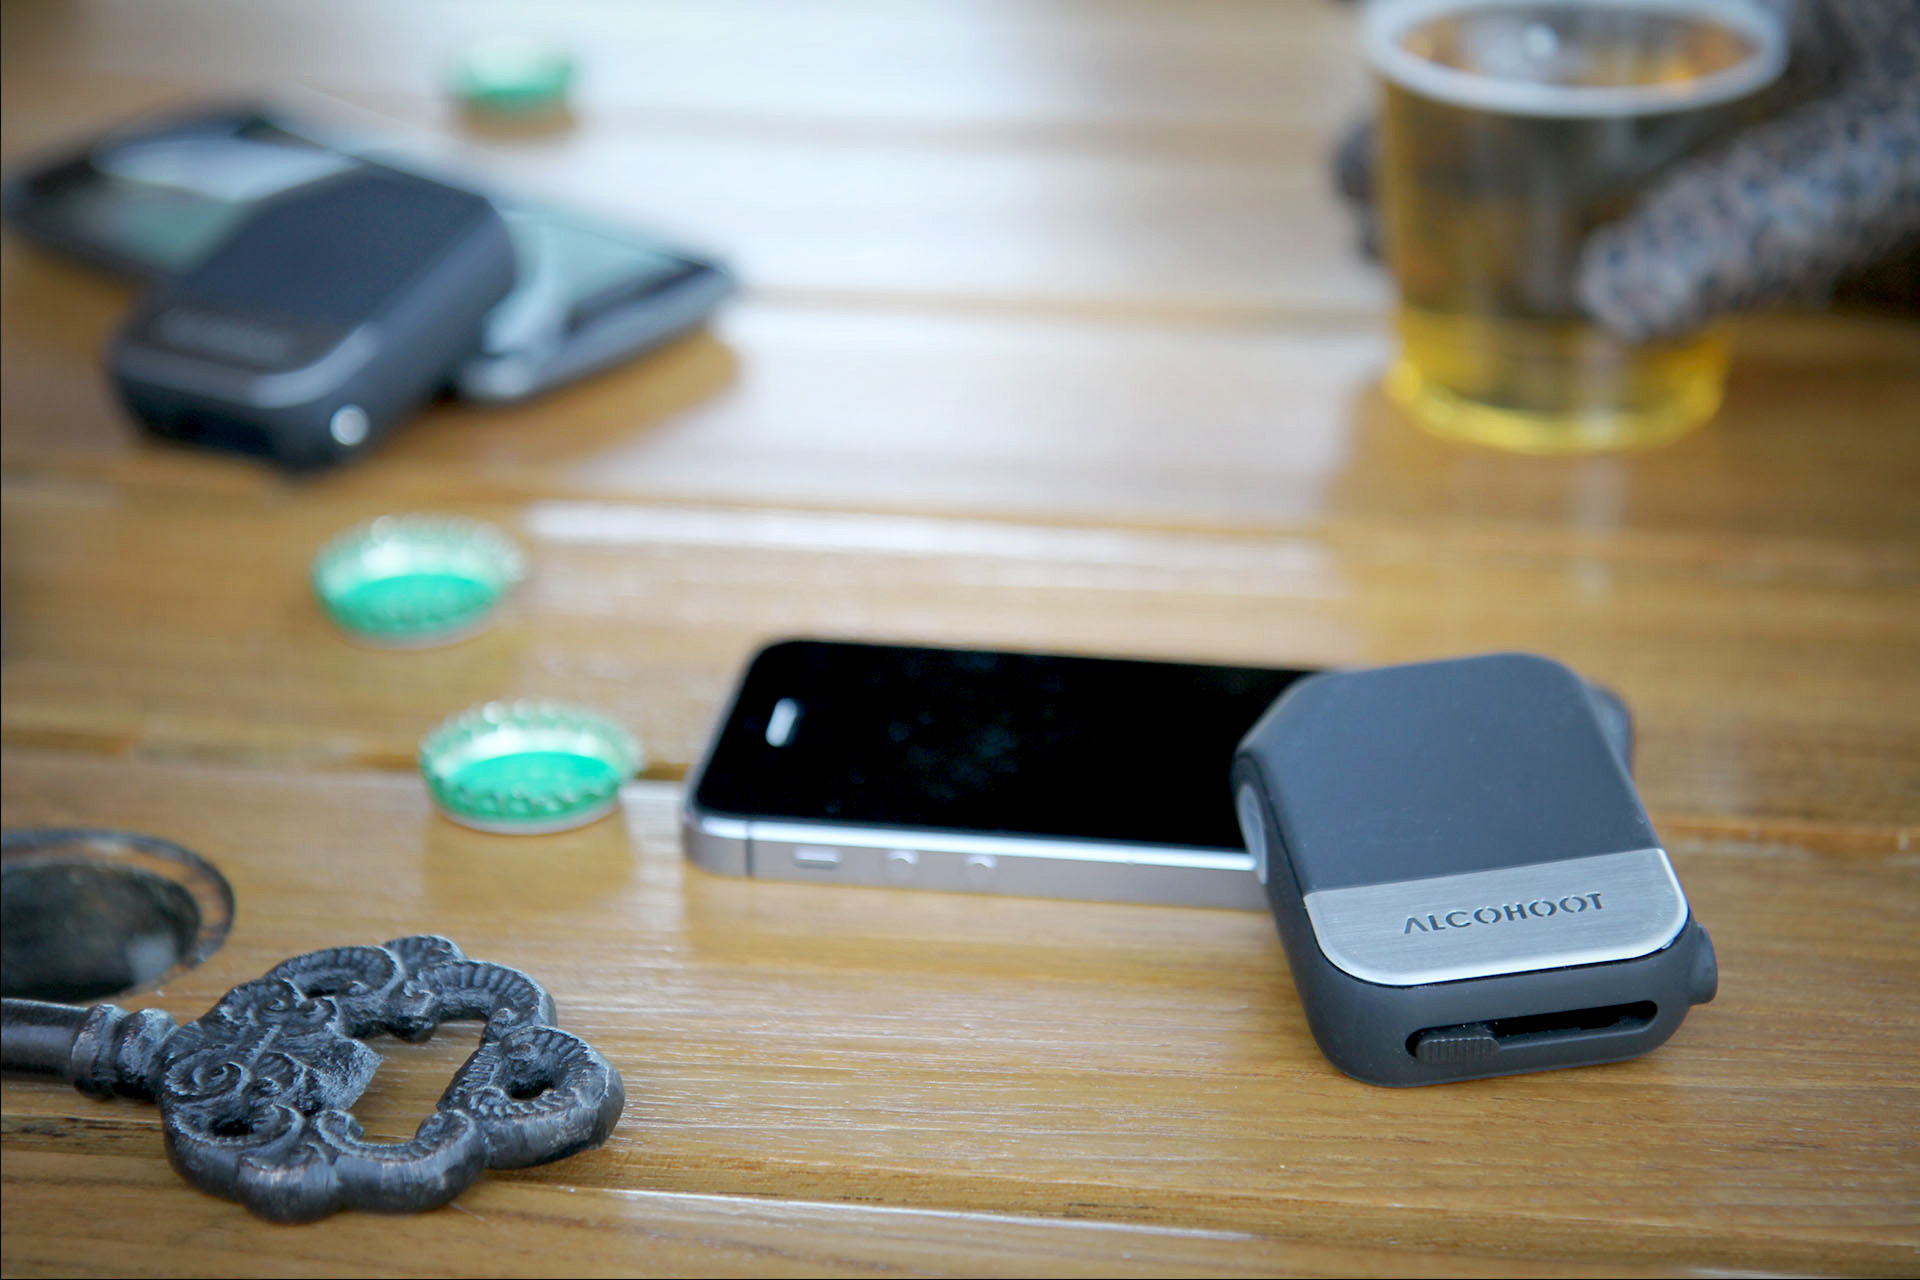 Alcohoot: A breathalyzer smartphone accessory that just might change the world